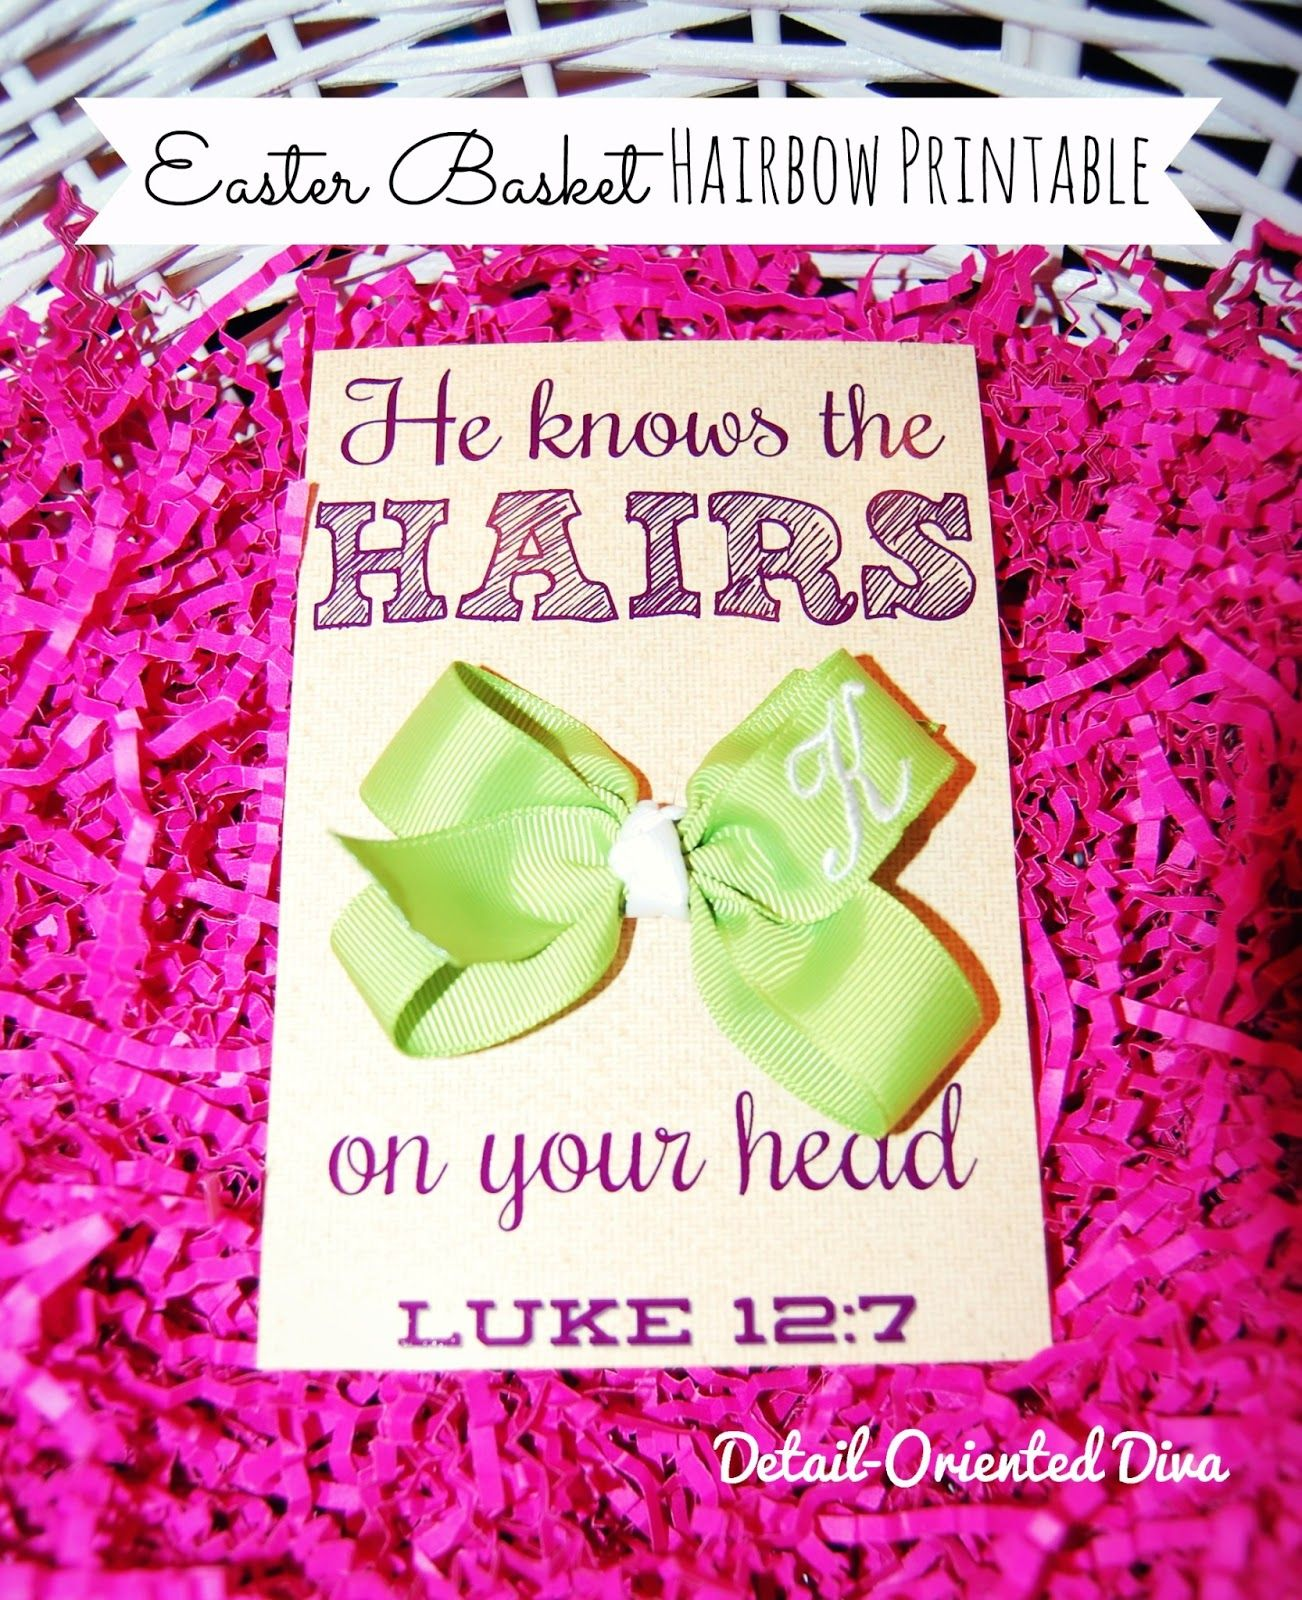 Detail oriented diva christ centered easter basket he knows christ centered easter basket he knows the negle Image collections